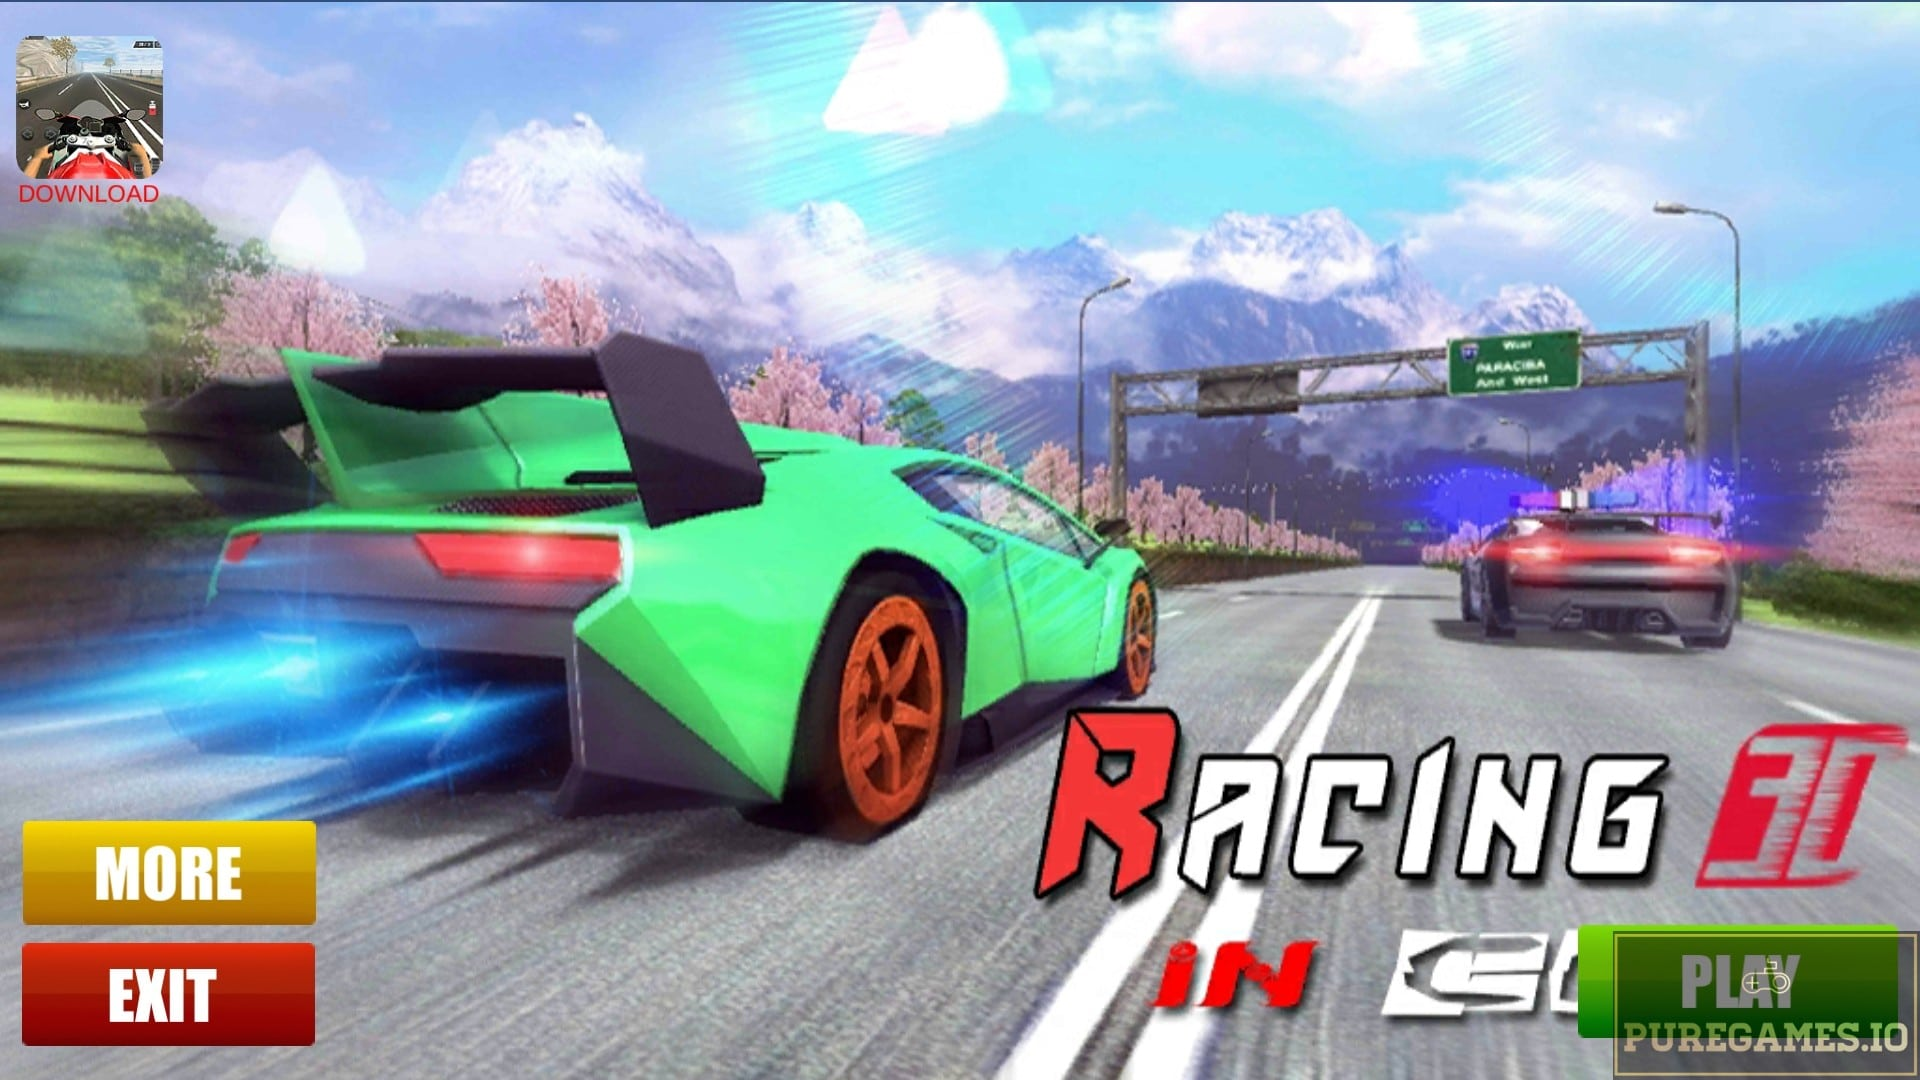 Download Racing In Car 3D APK - For Android 8